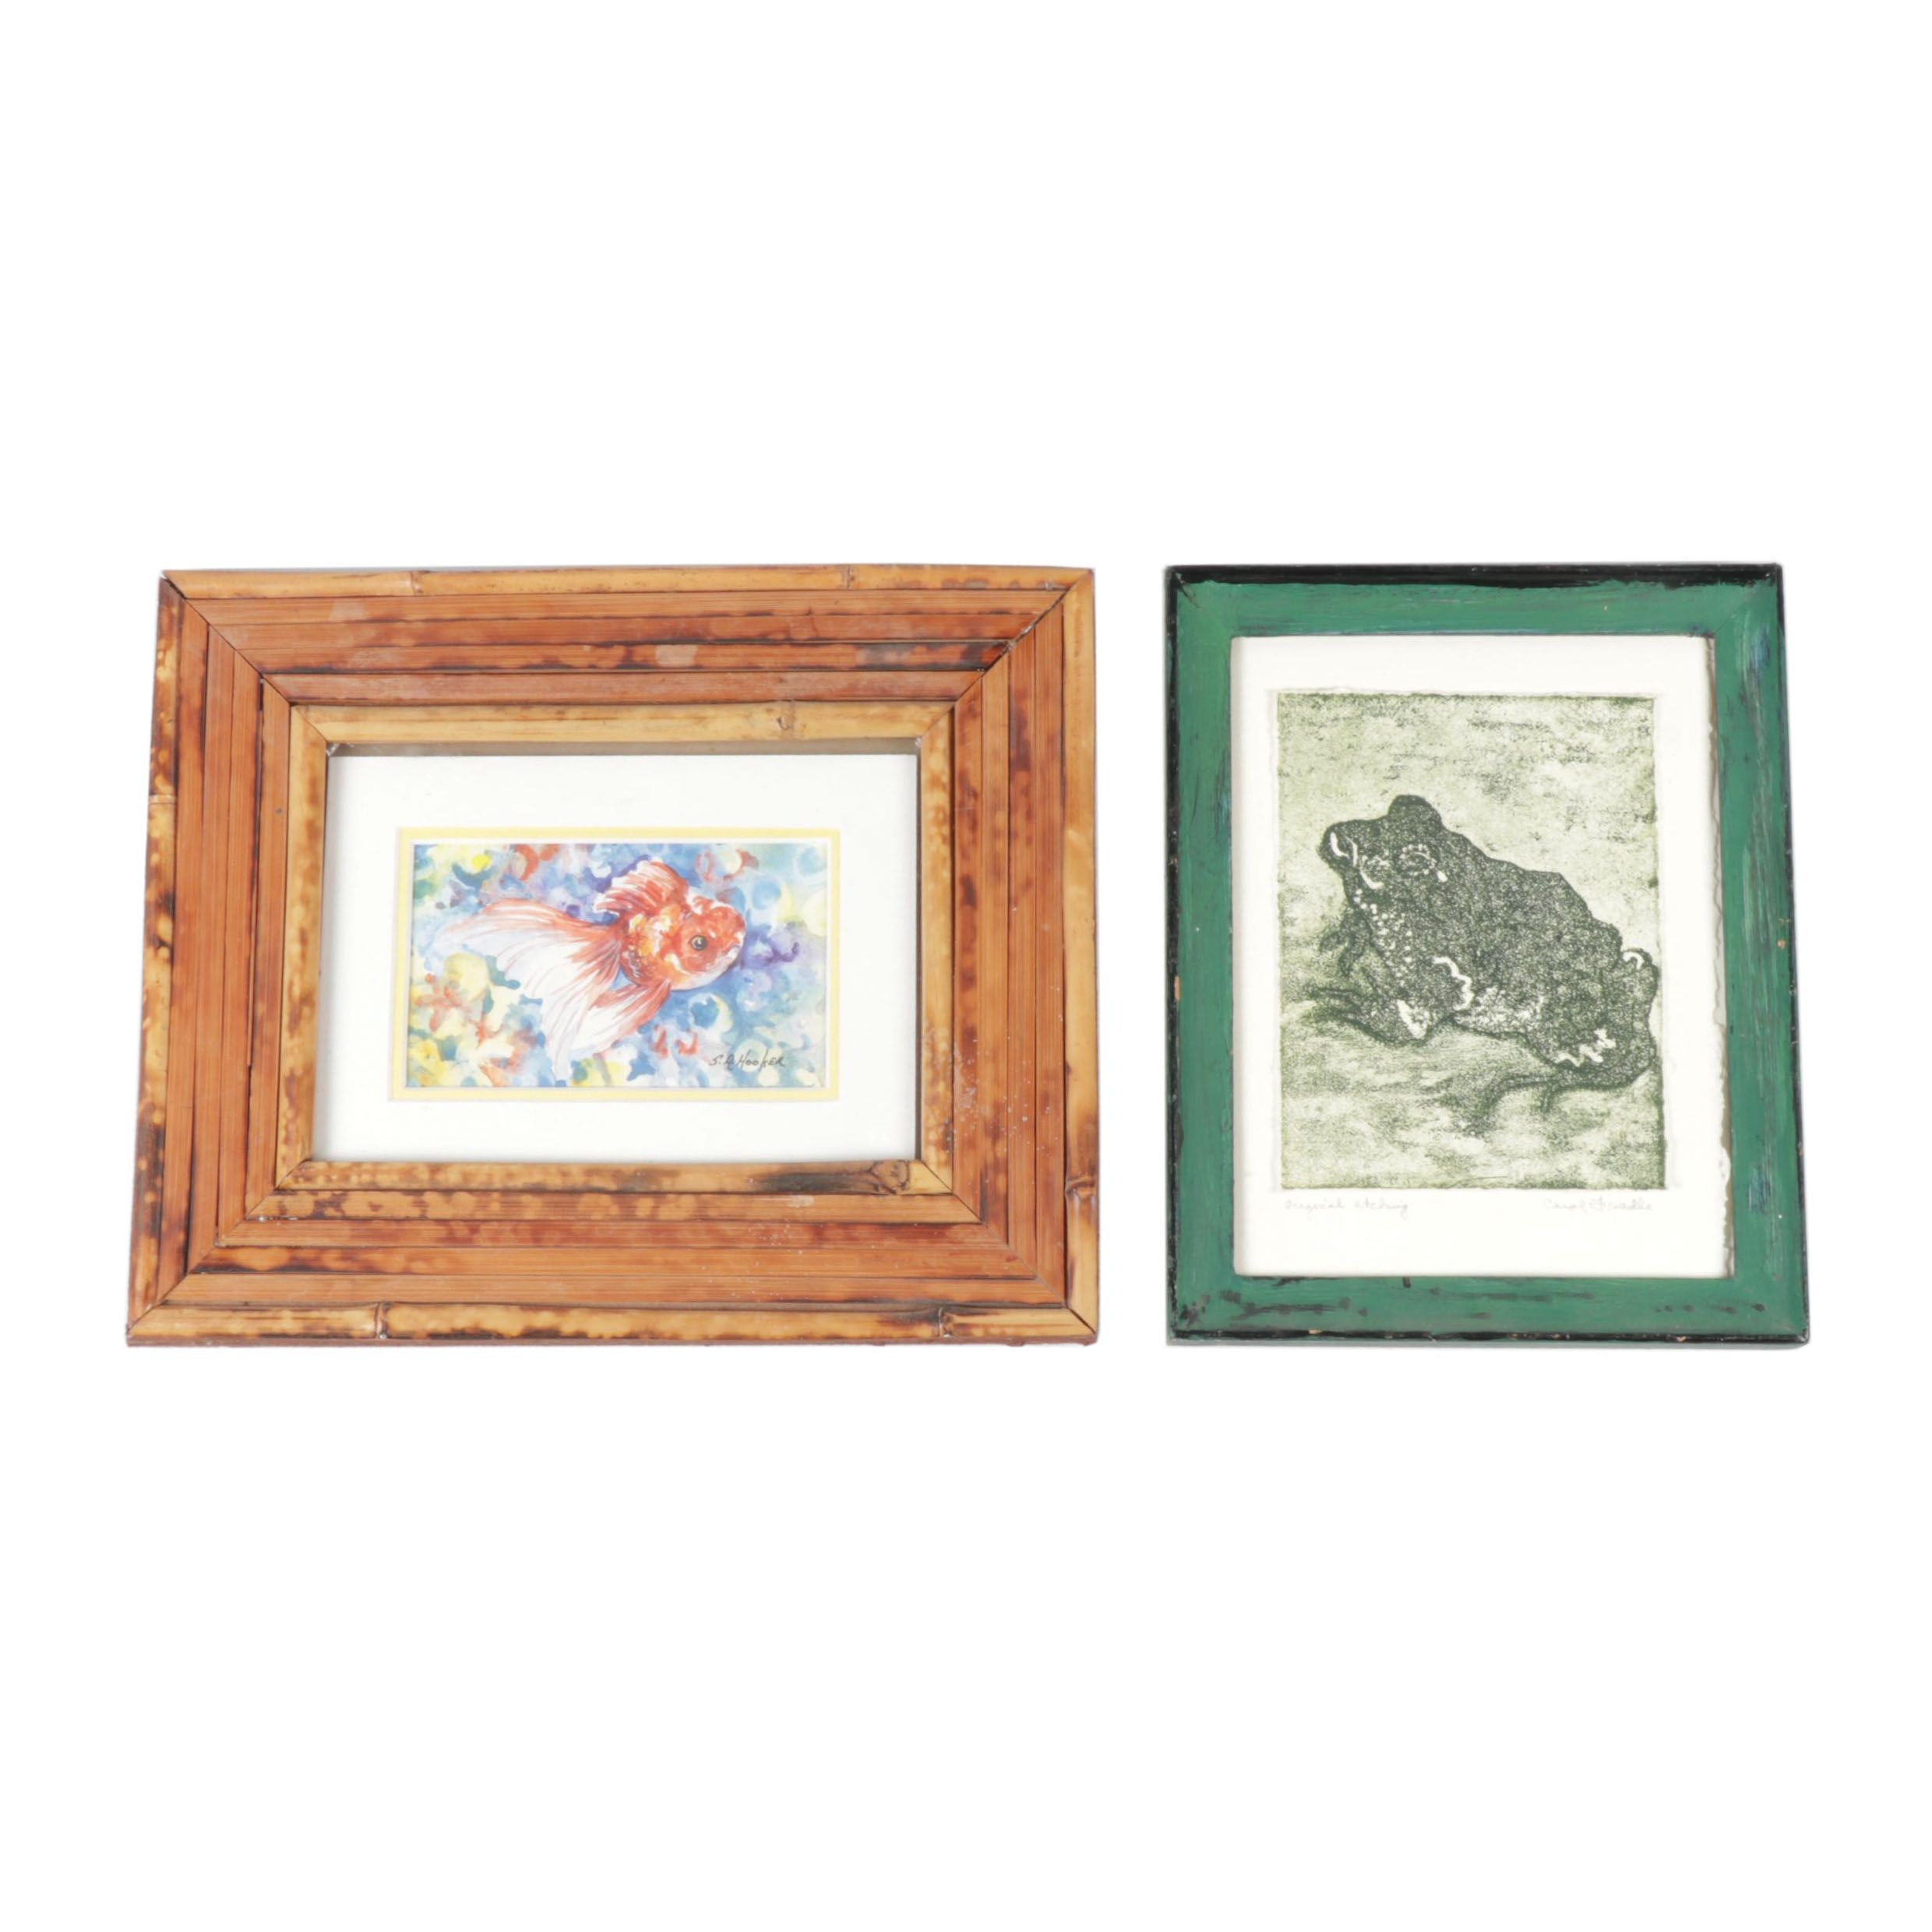 20th Century Frog Aquatint and Etching and Fish Watercolor Painting